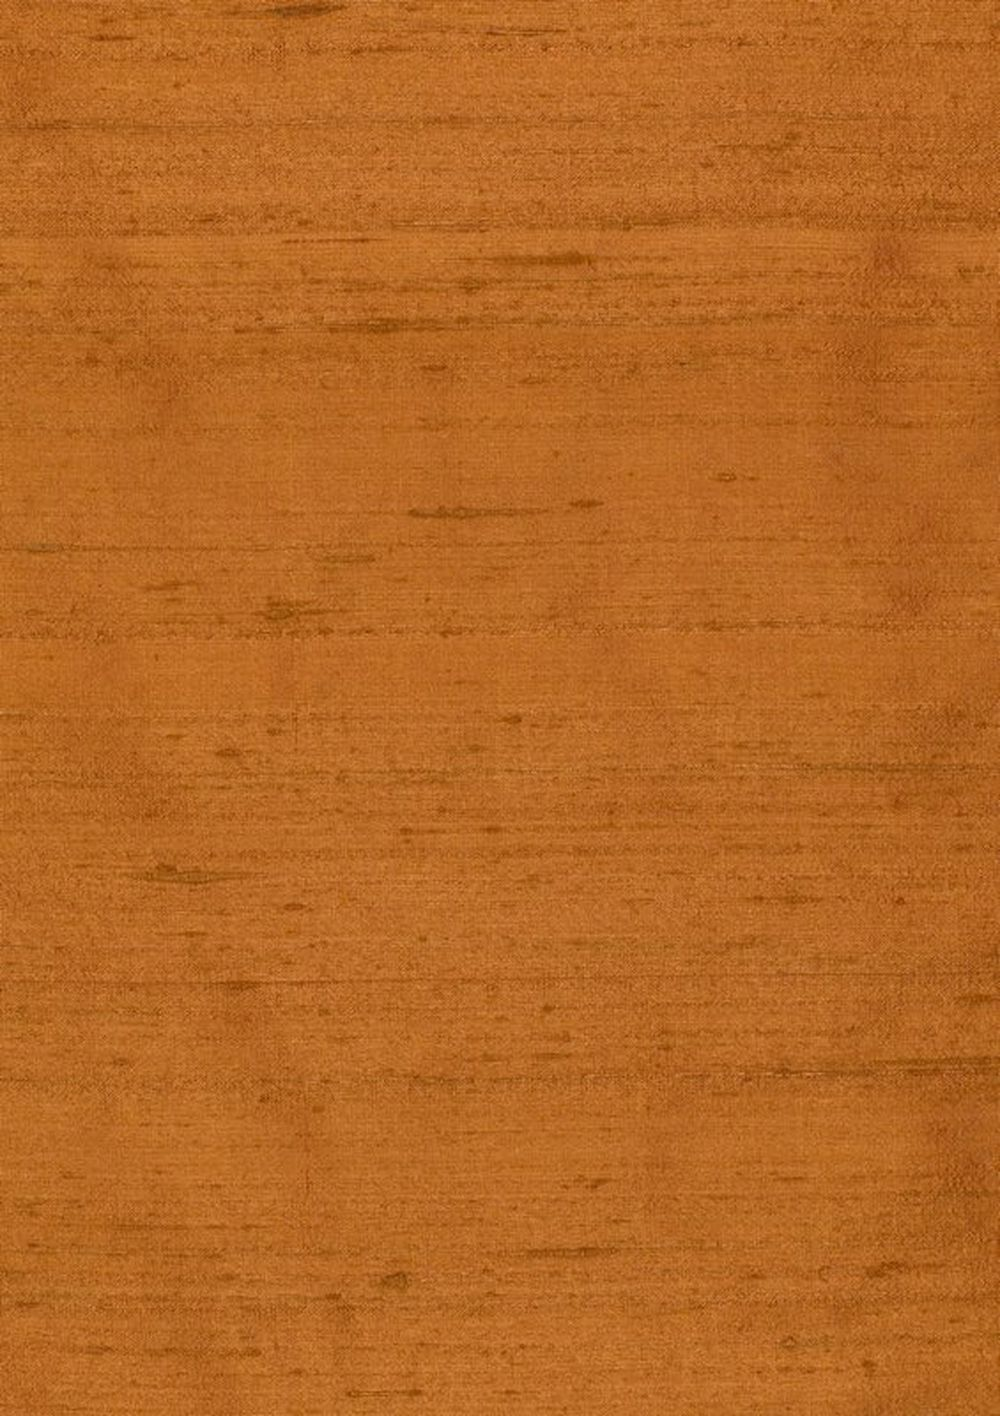 Photo of the fabric Luxury Nectar-179 swatch by James Dunlop. Use for Curtains. Style of Plain